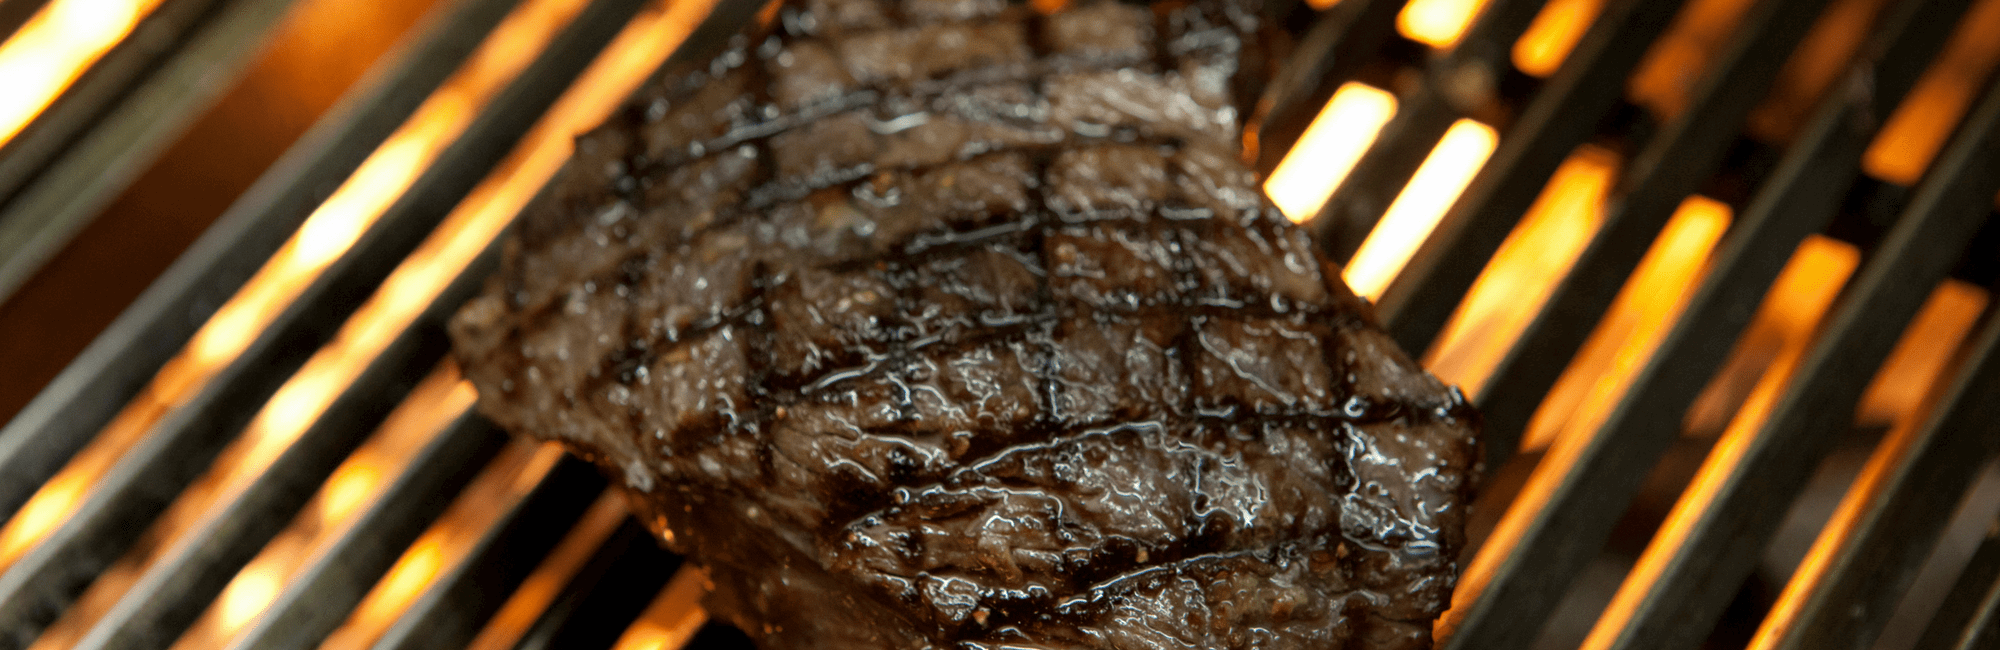 Steak at 34 Mayfair, a Steak Restaurant in London Mayfair